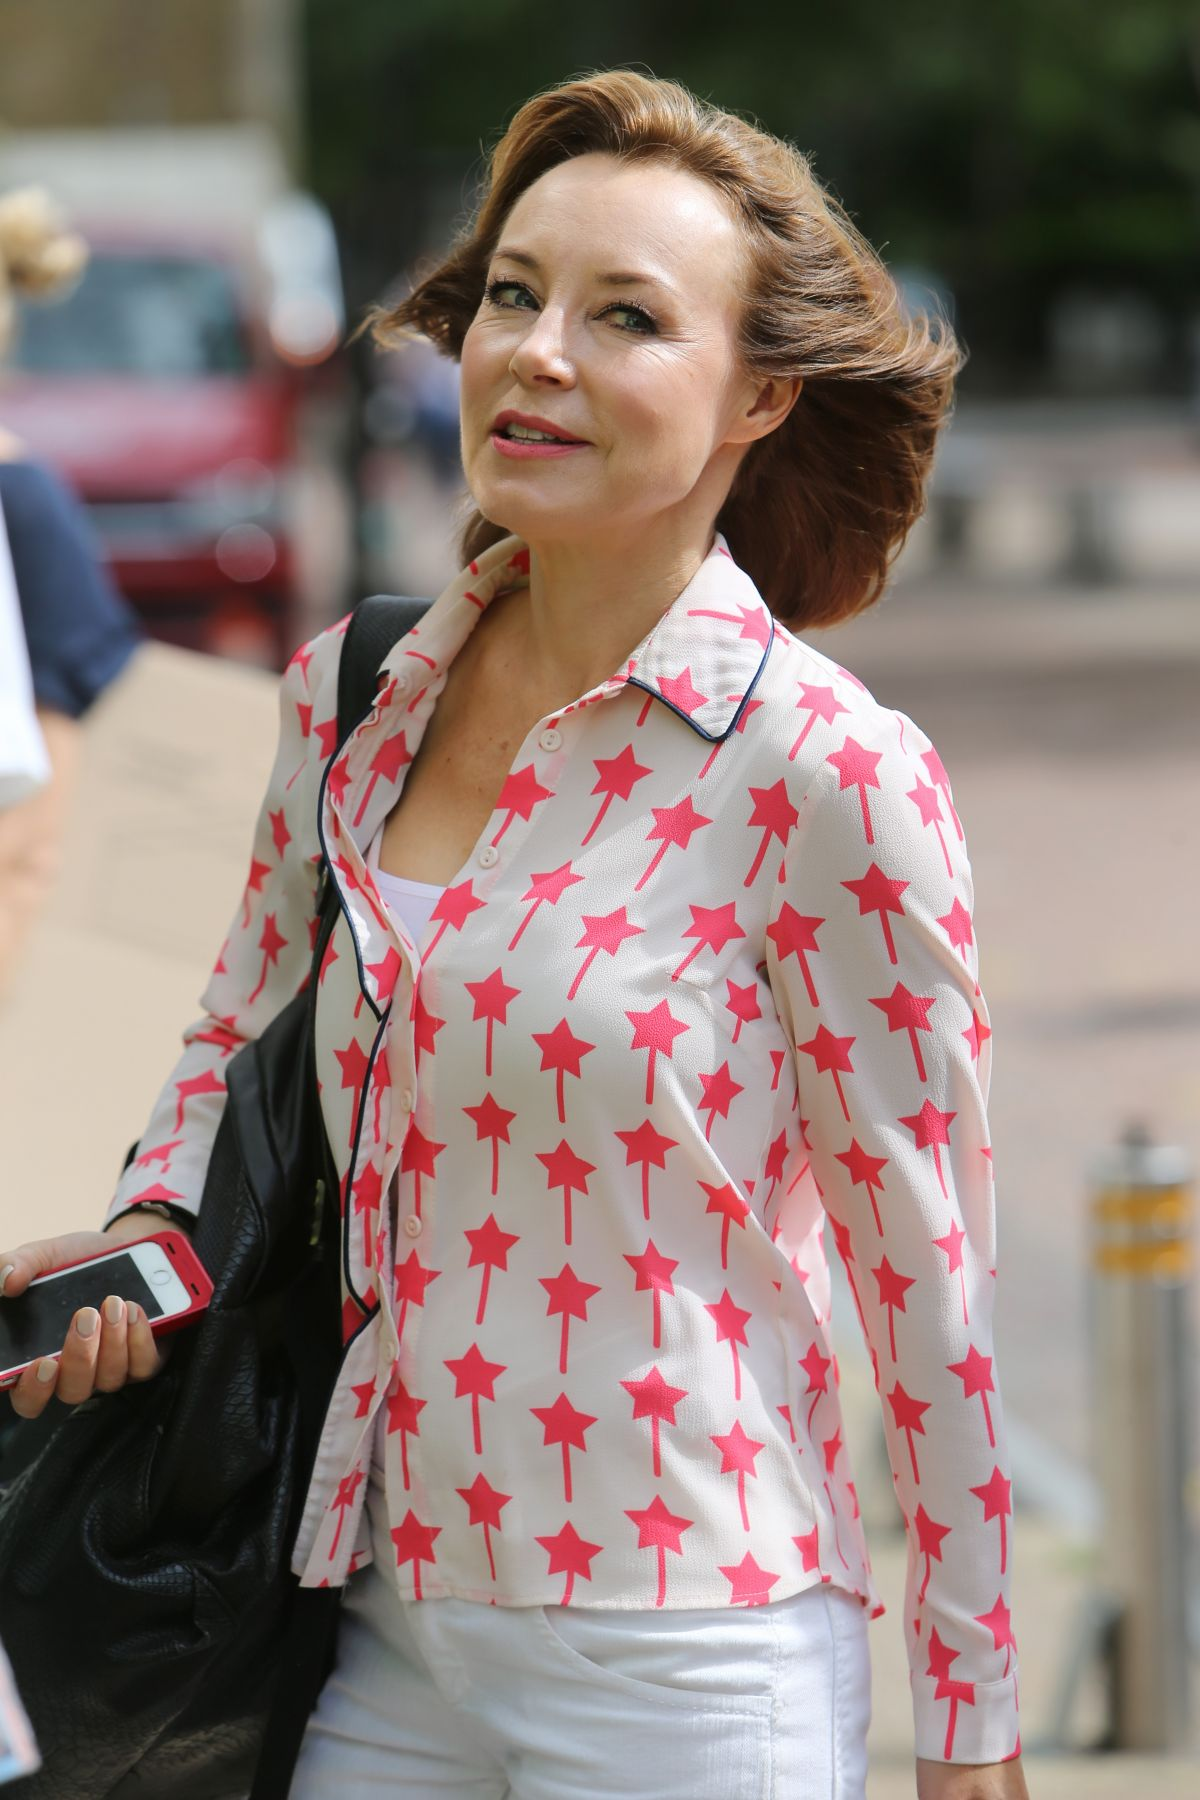 sian williams outside itv studios in london   celebzz